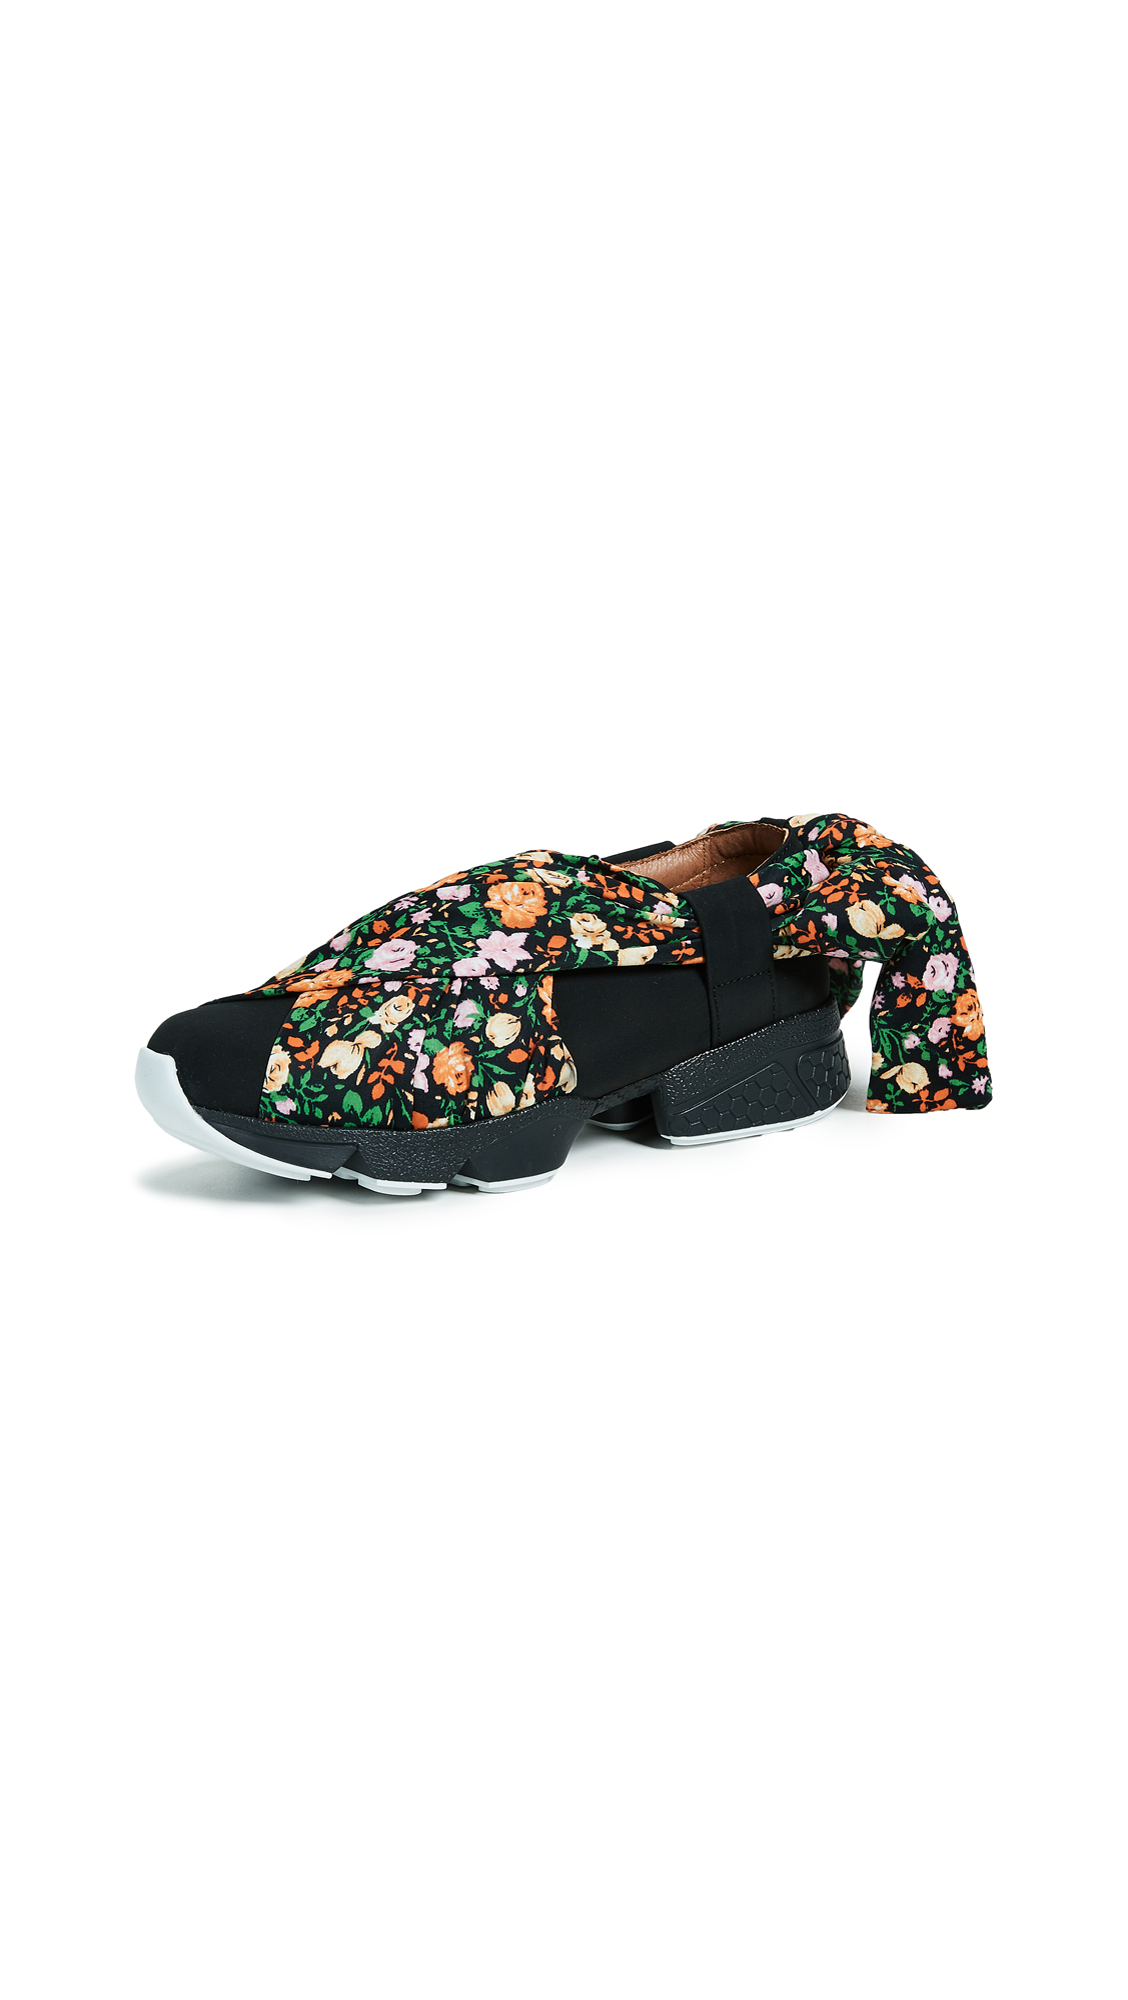 Ganni Ebba Sneakers - Multicolor